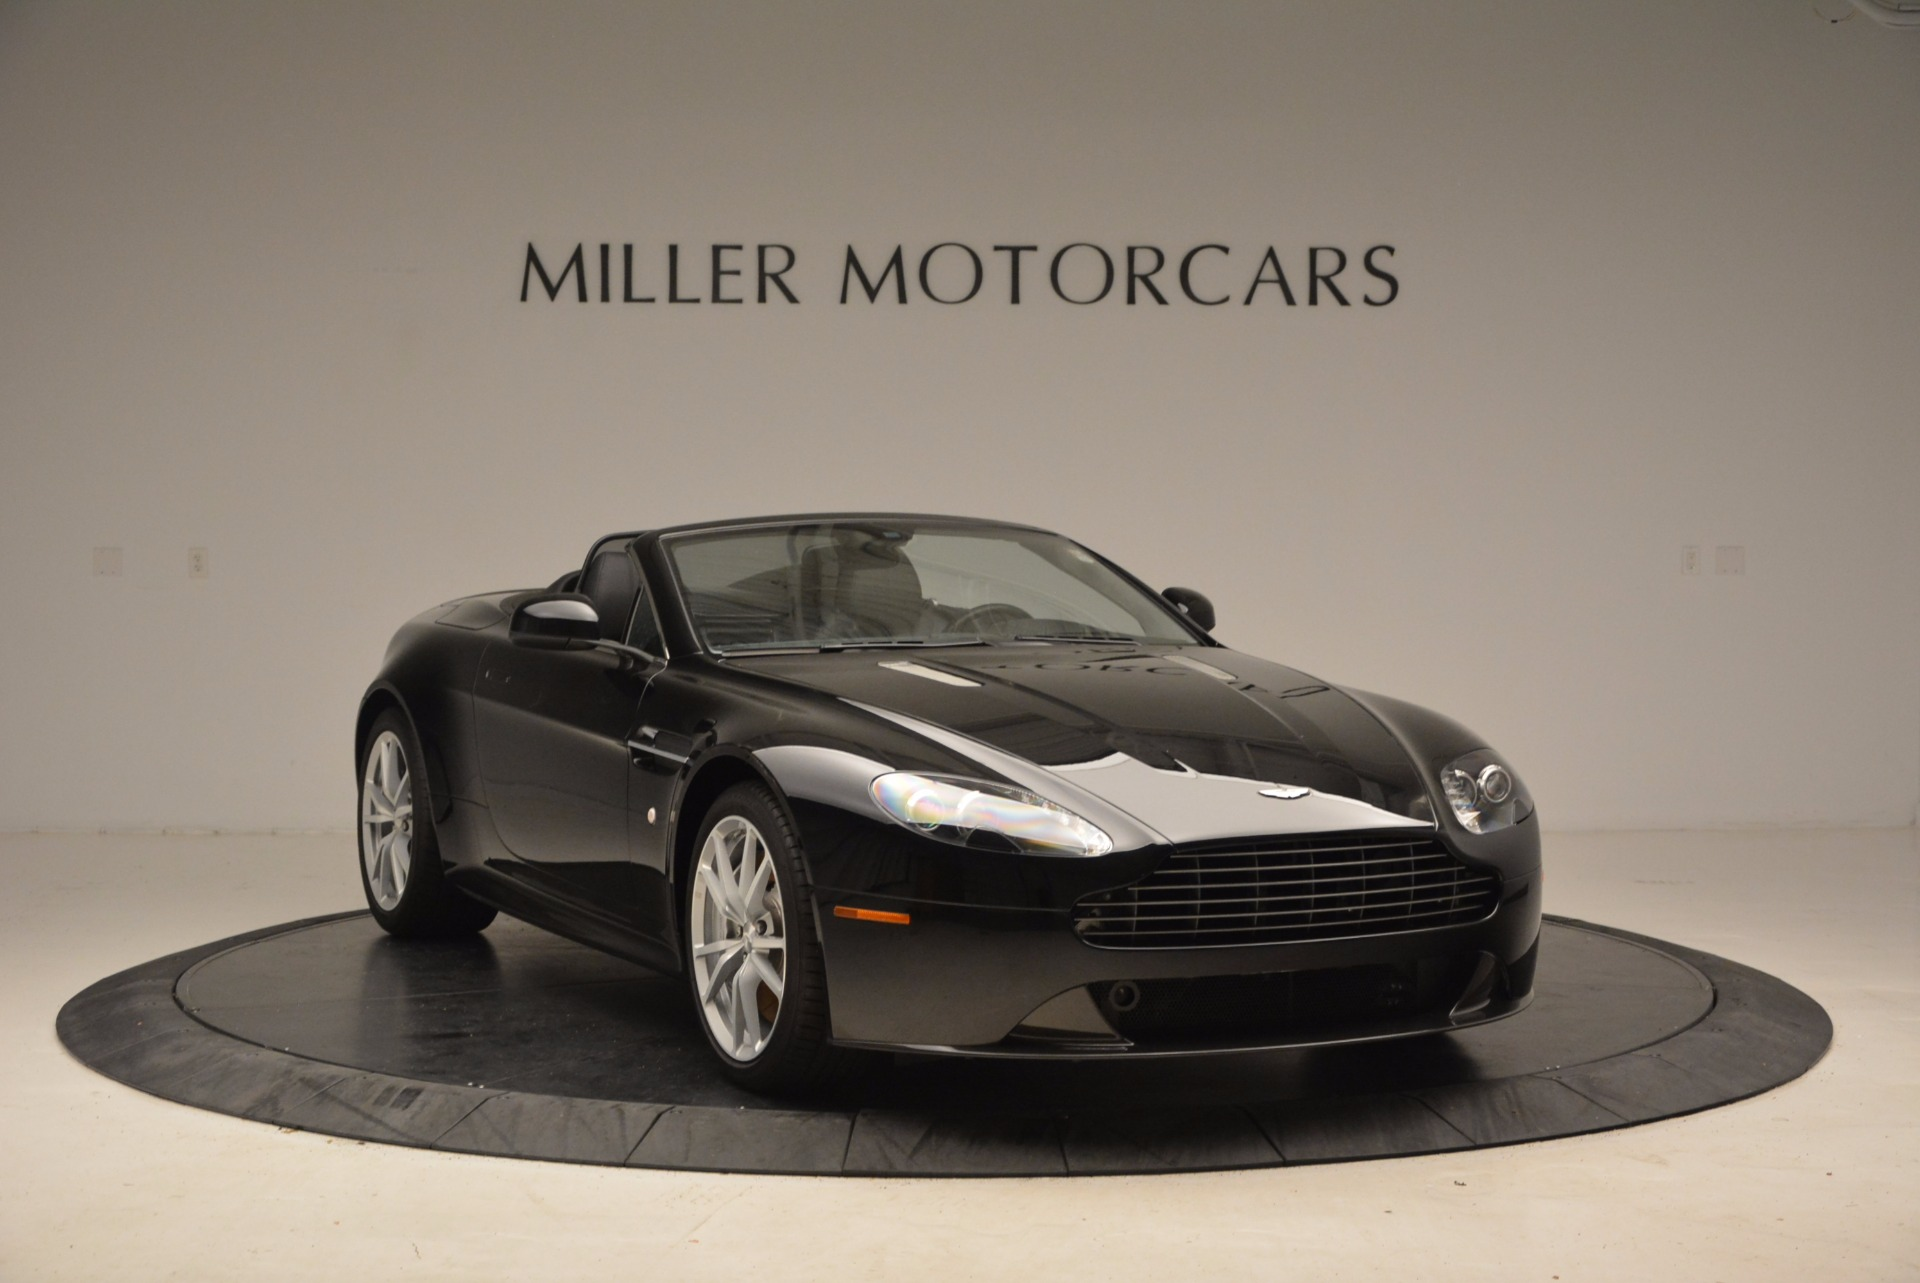 New 2016 Aston Martin V8 Vantage Roadster For Sale In Westport, CT 1546_p11